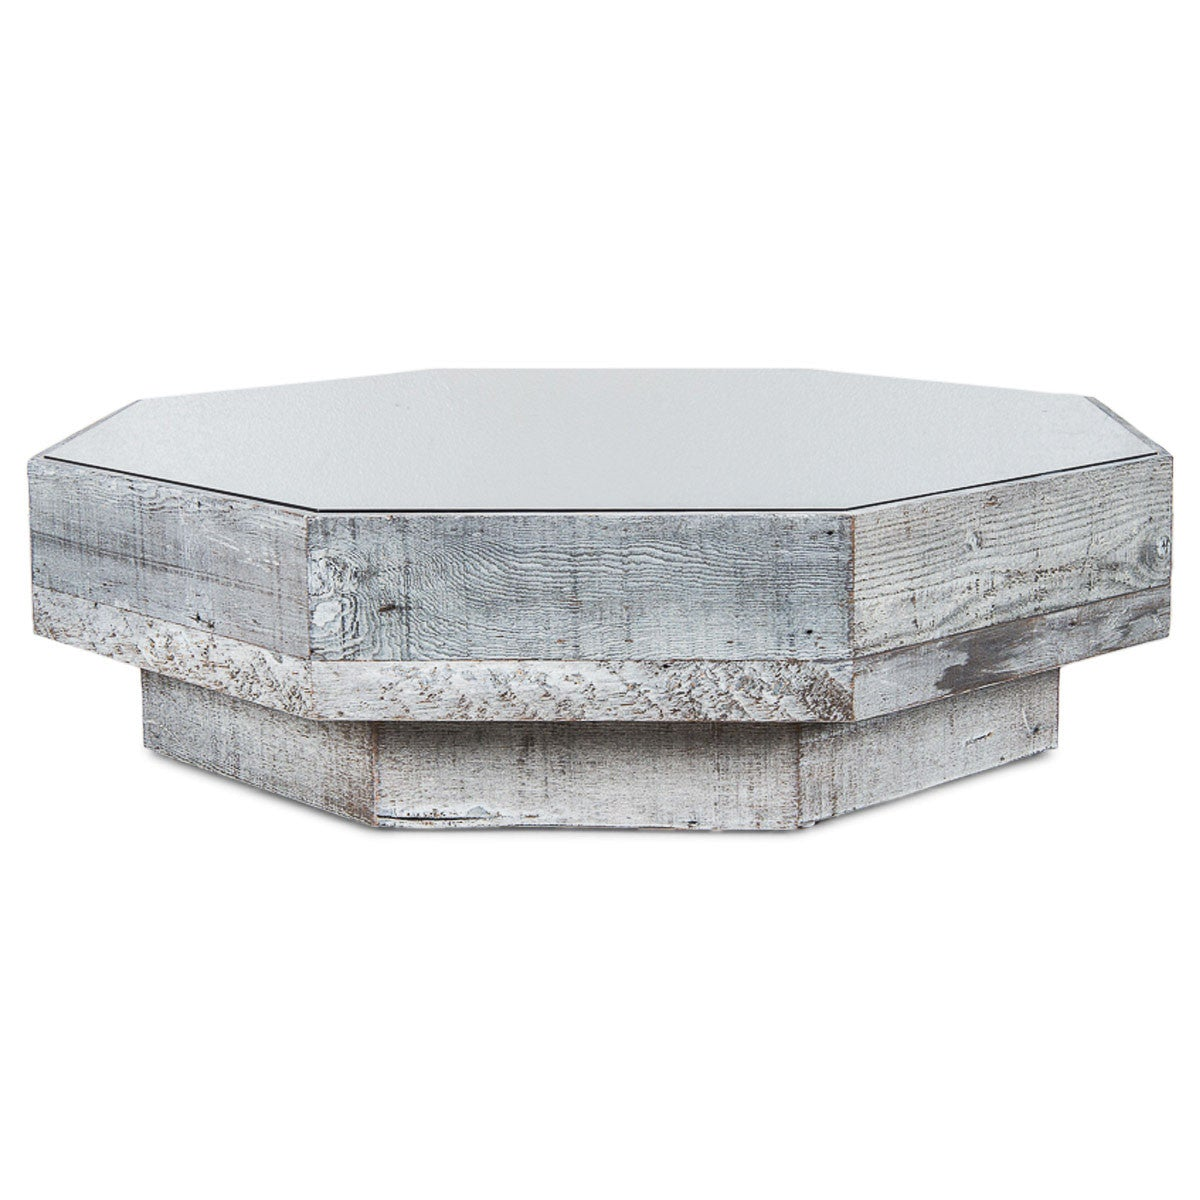 Merveilleux Recycled Wood/Grey Glass Octagon Coffee Table